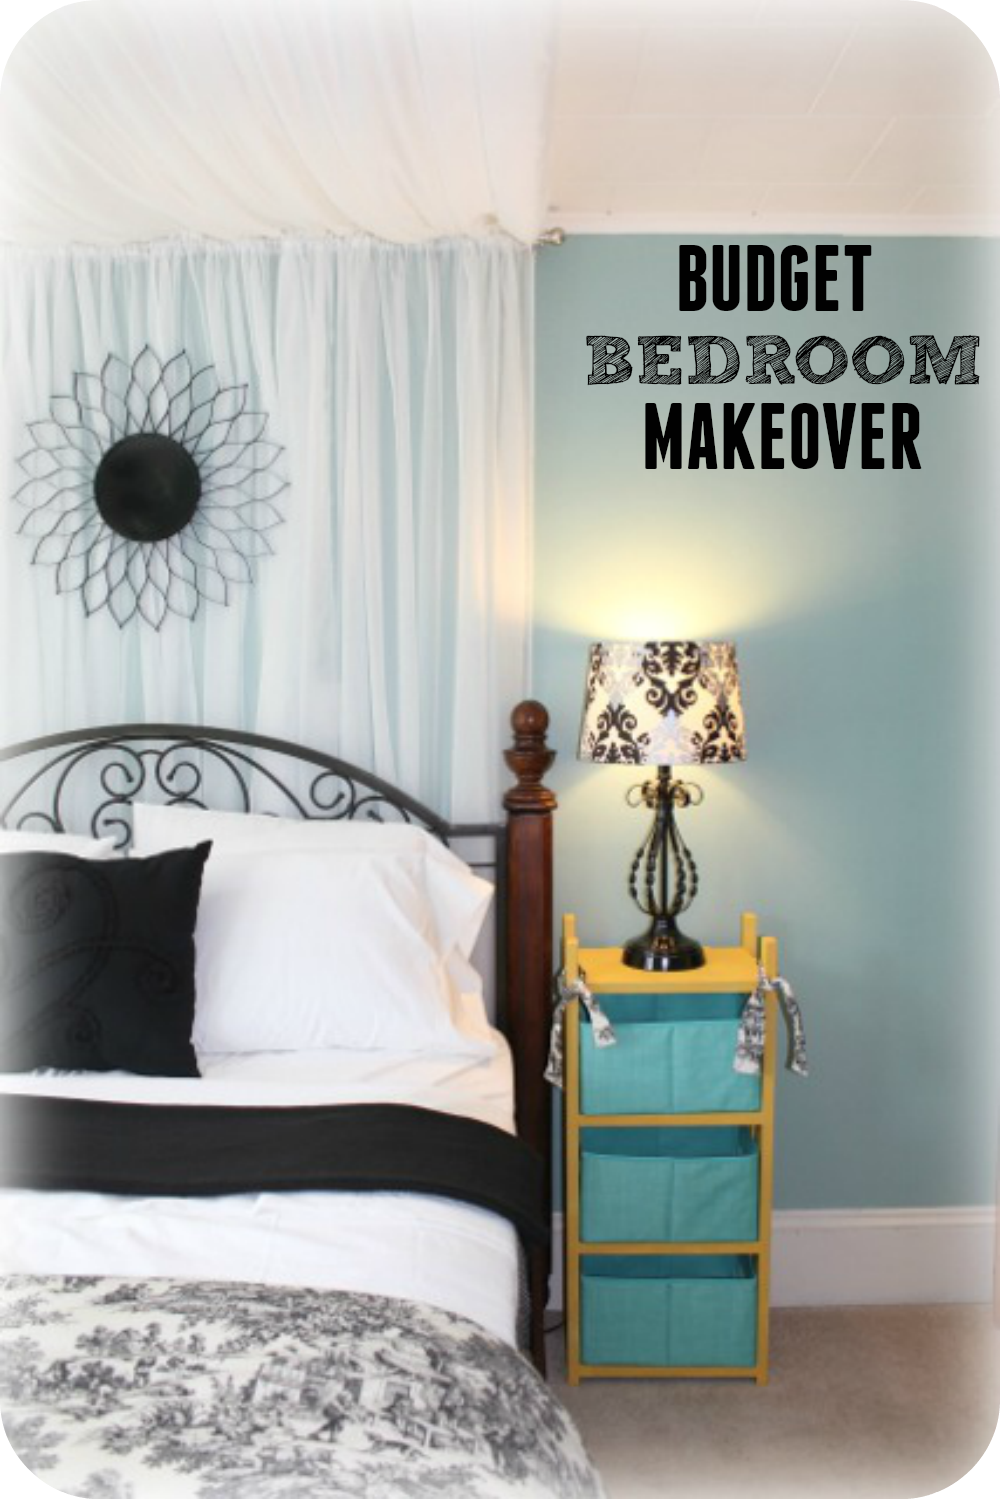 my bedroom makeover budget bedroom ideas 12675